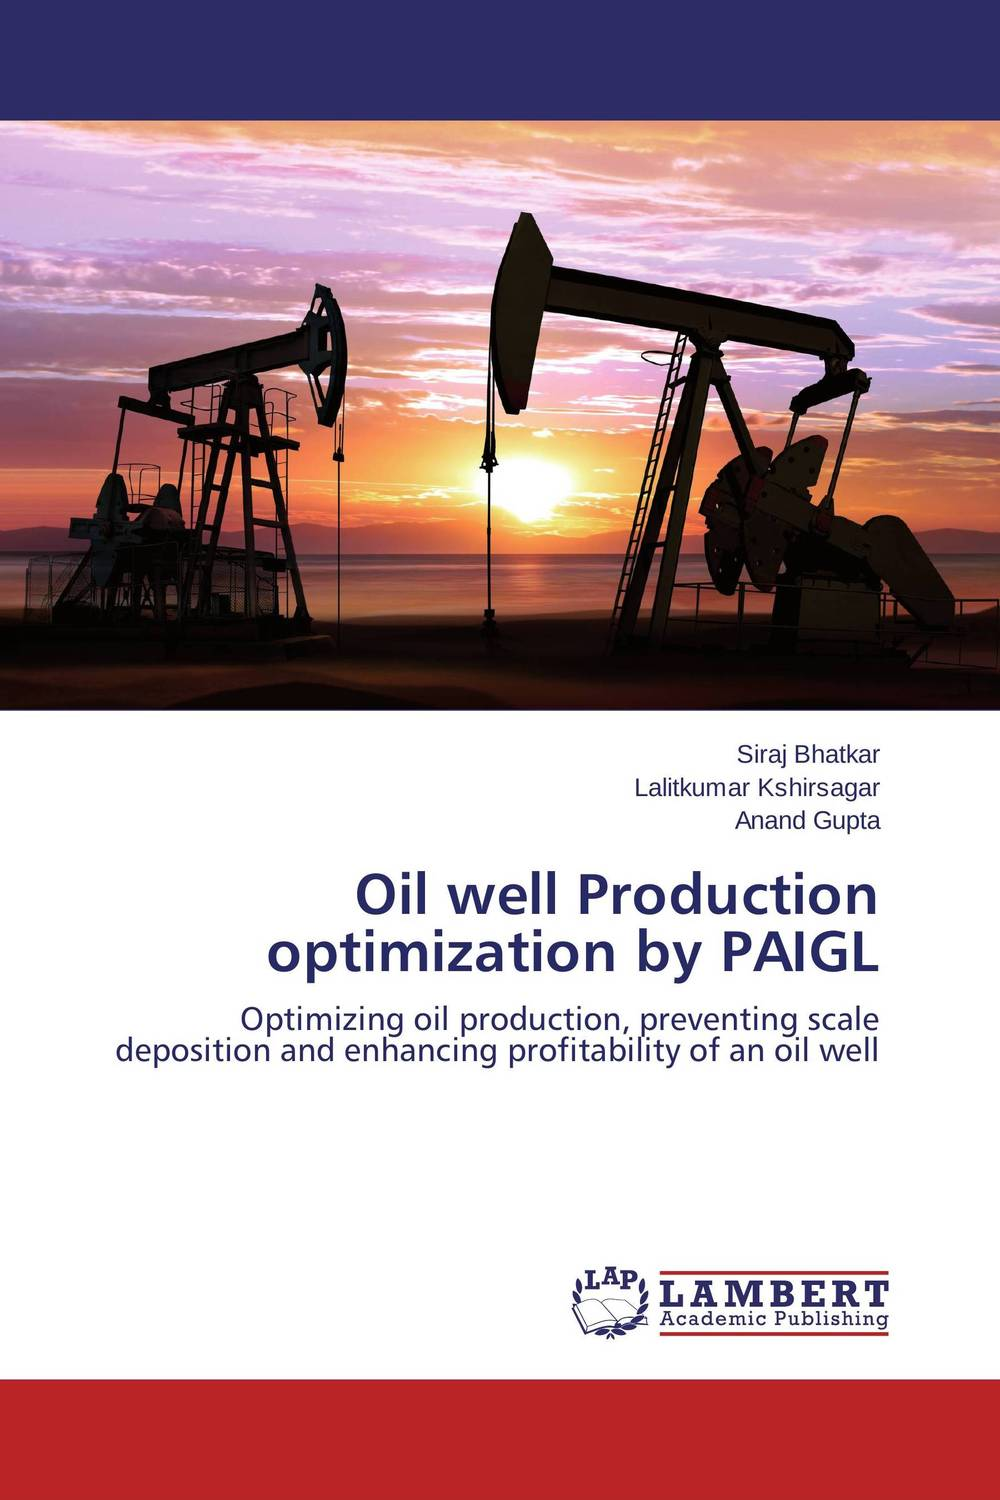 Oil well Production optimization by PAIGL dearomatization of crude oil